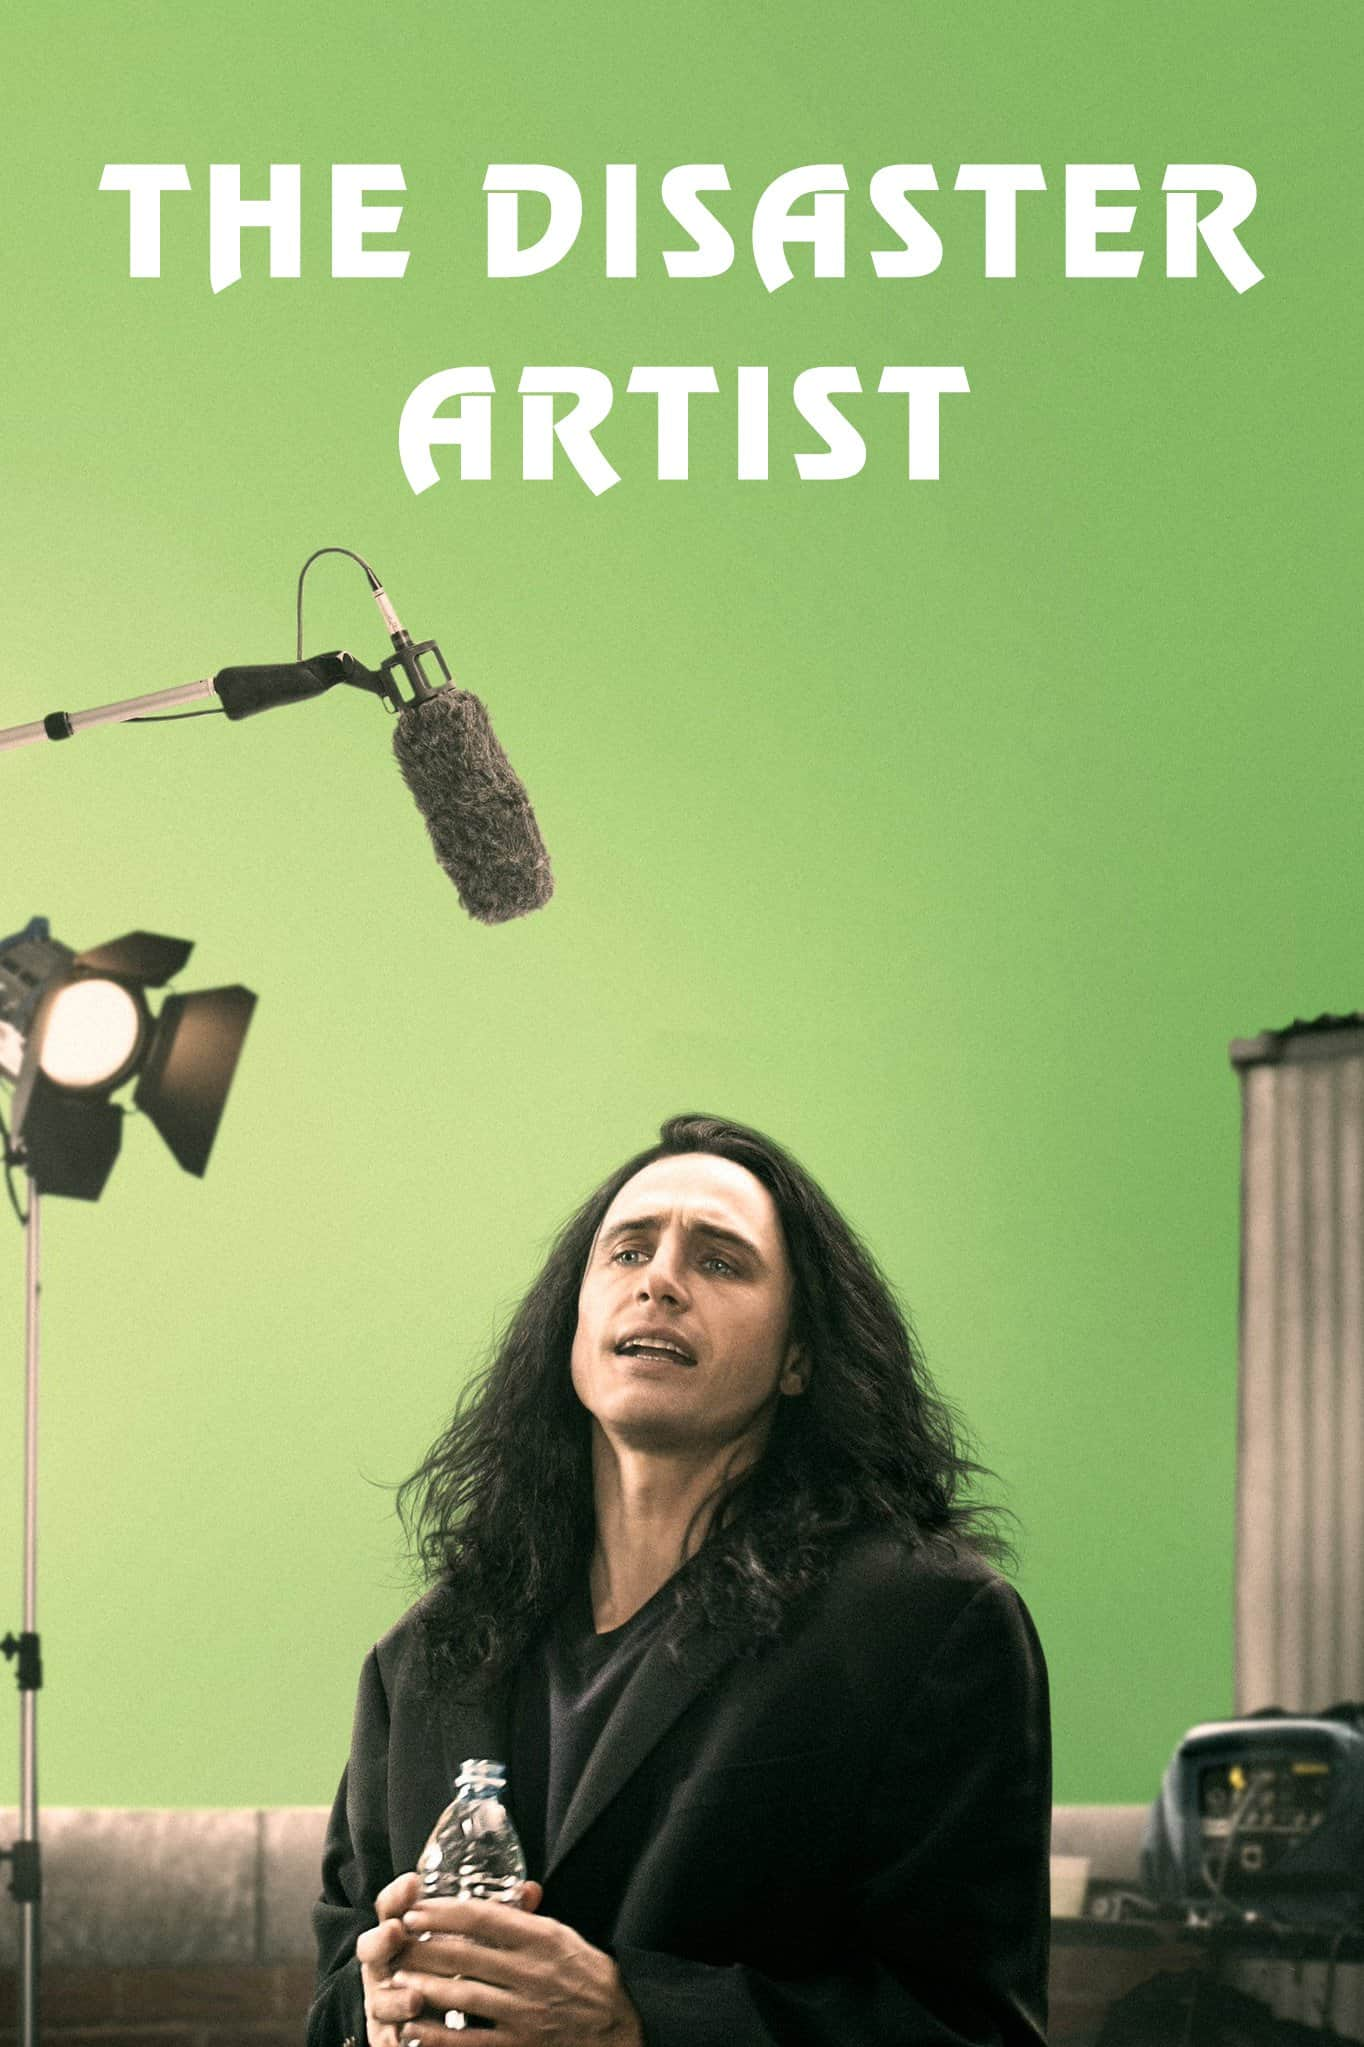 The Disaster Artist, 2017